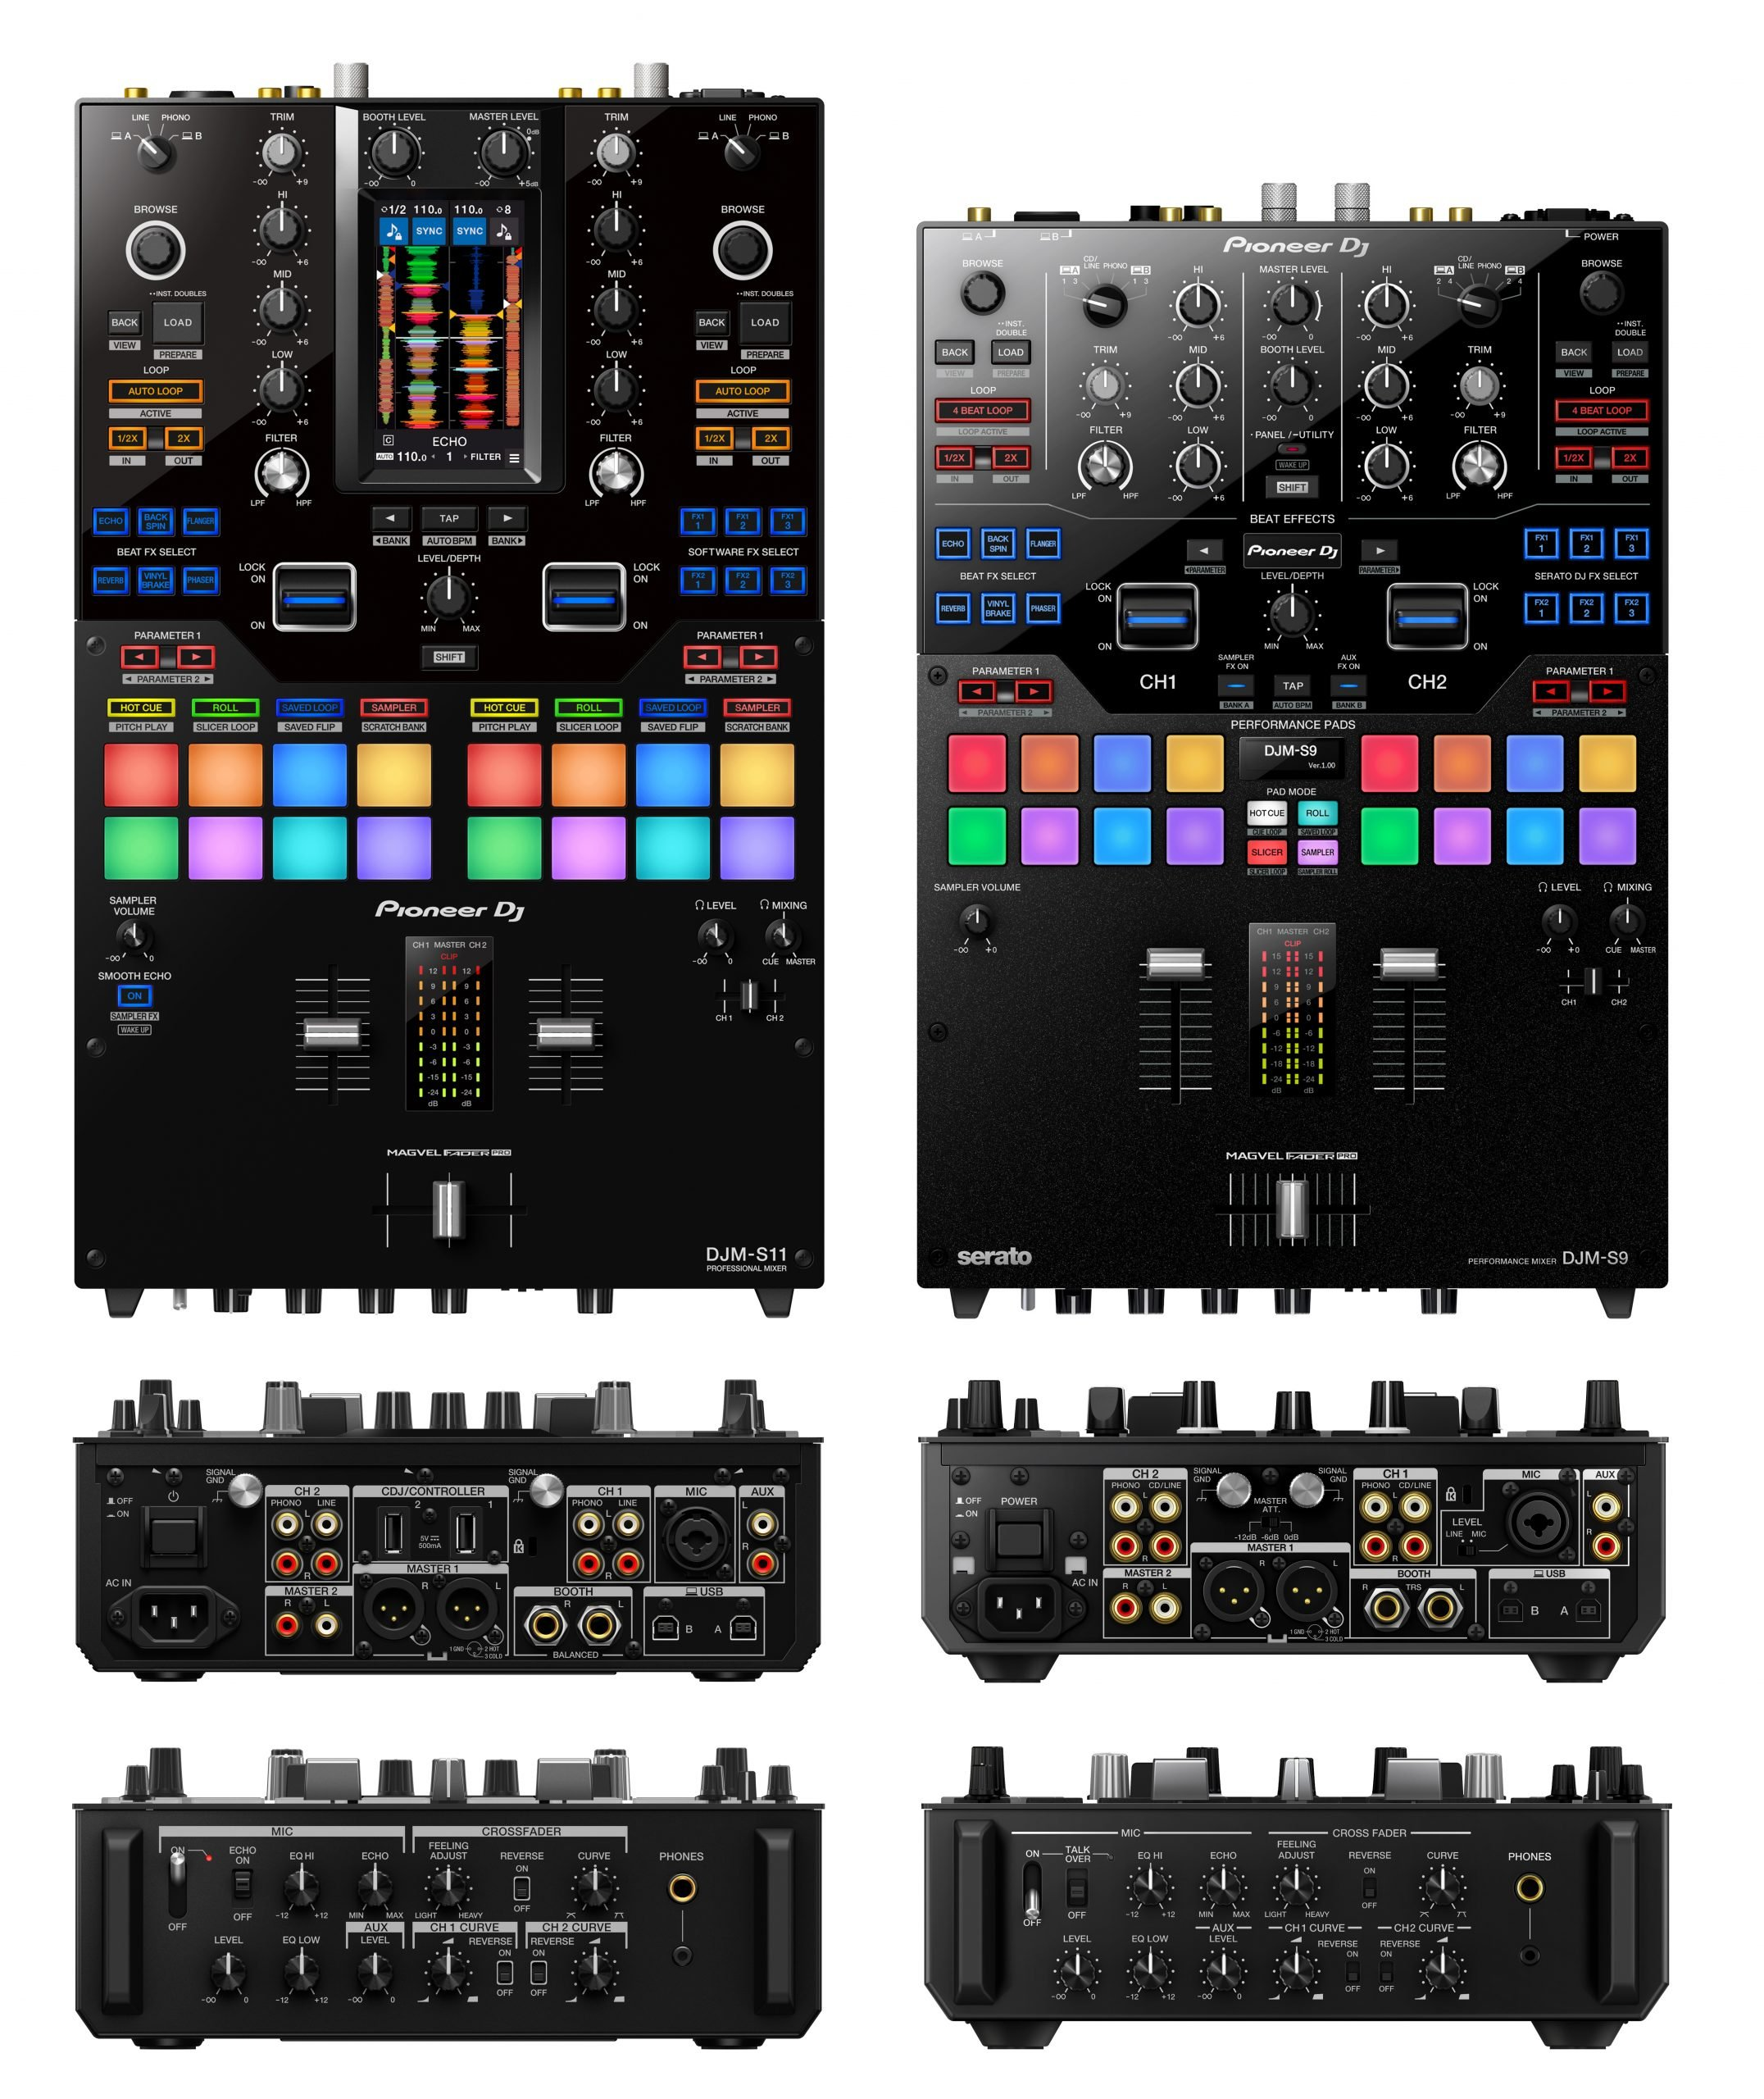 The Pioneer DJ DJM-S11 — some observations 3